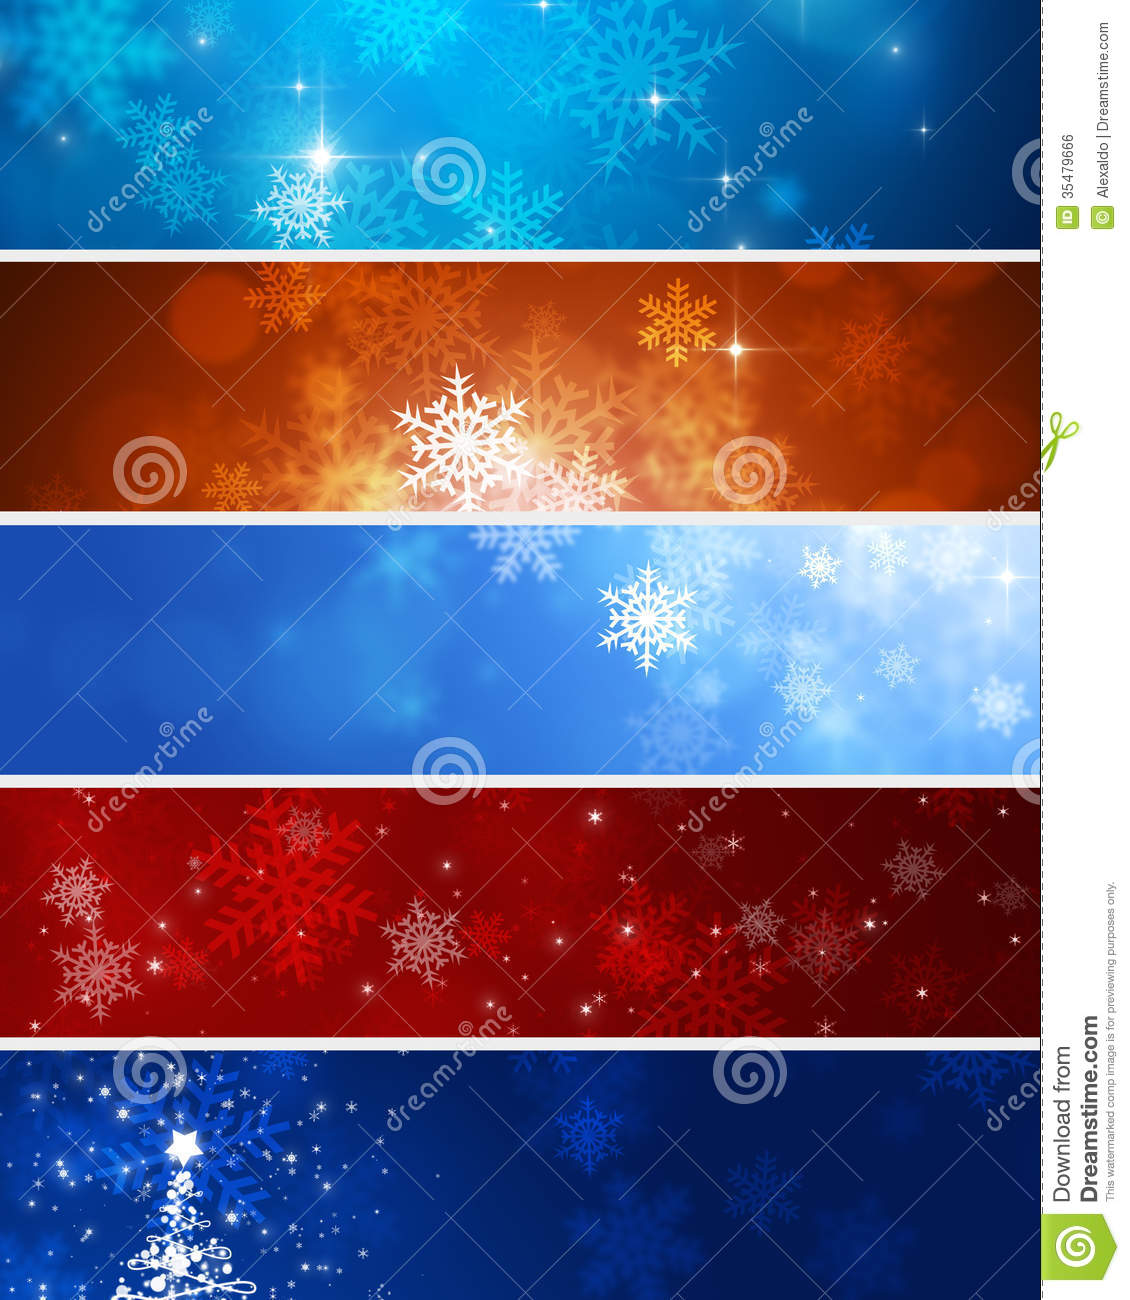 Snow Winter Banners Royalty Free Stock Image - Image: 35479666